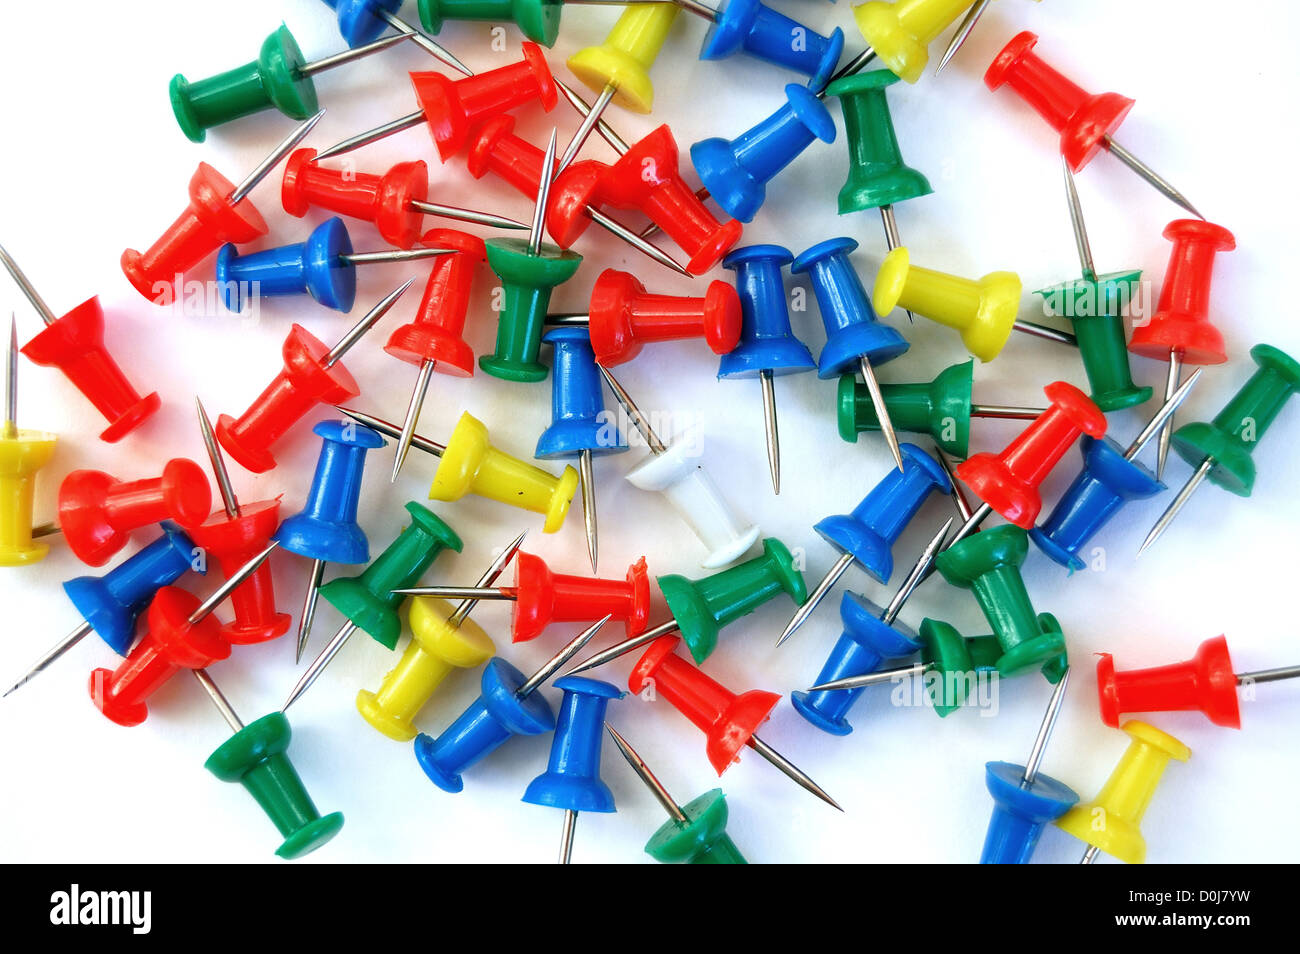 Colorful push pins on white background. - Stock Image